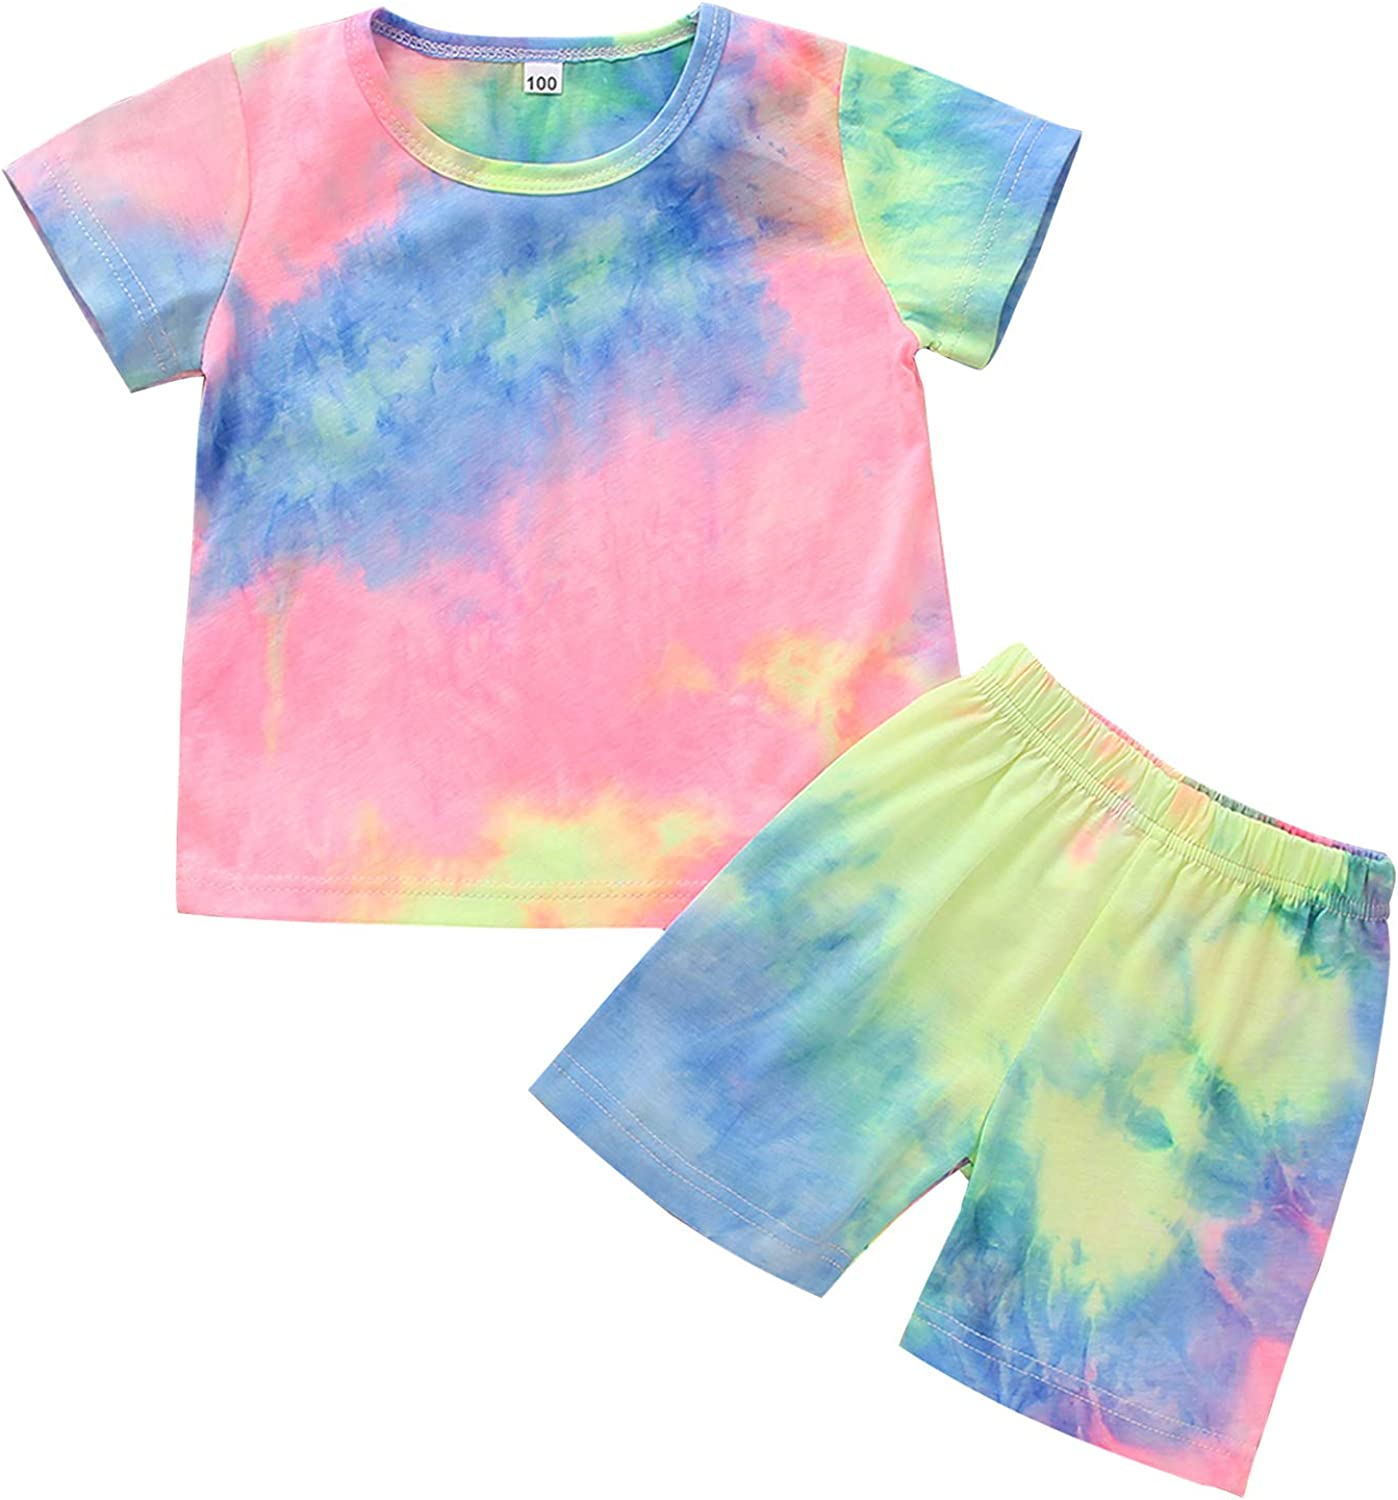 Baby Boy Girl Solid Color Outfit Unisex Kids Short Sleeve Top with Shorts 2 Pieces Summer Clothes Set